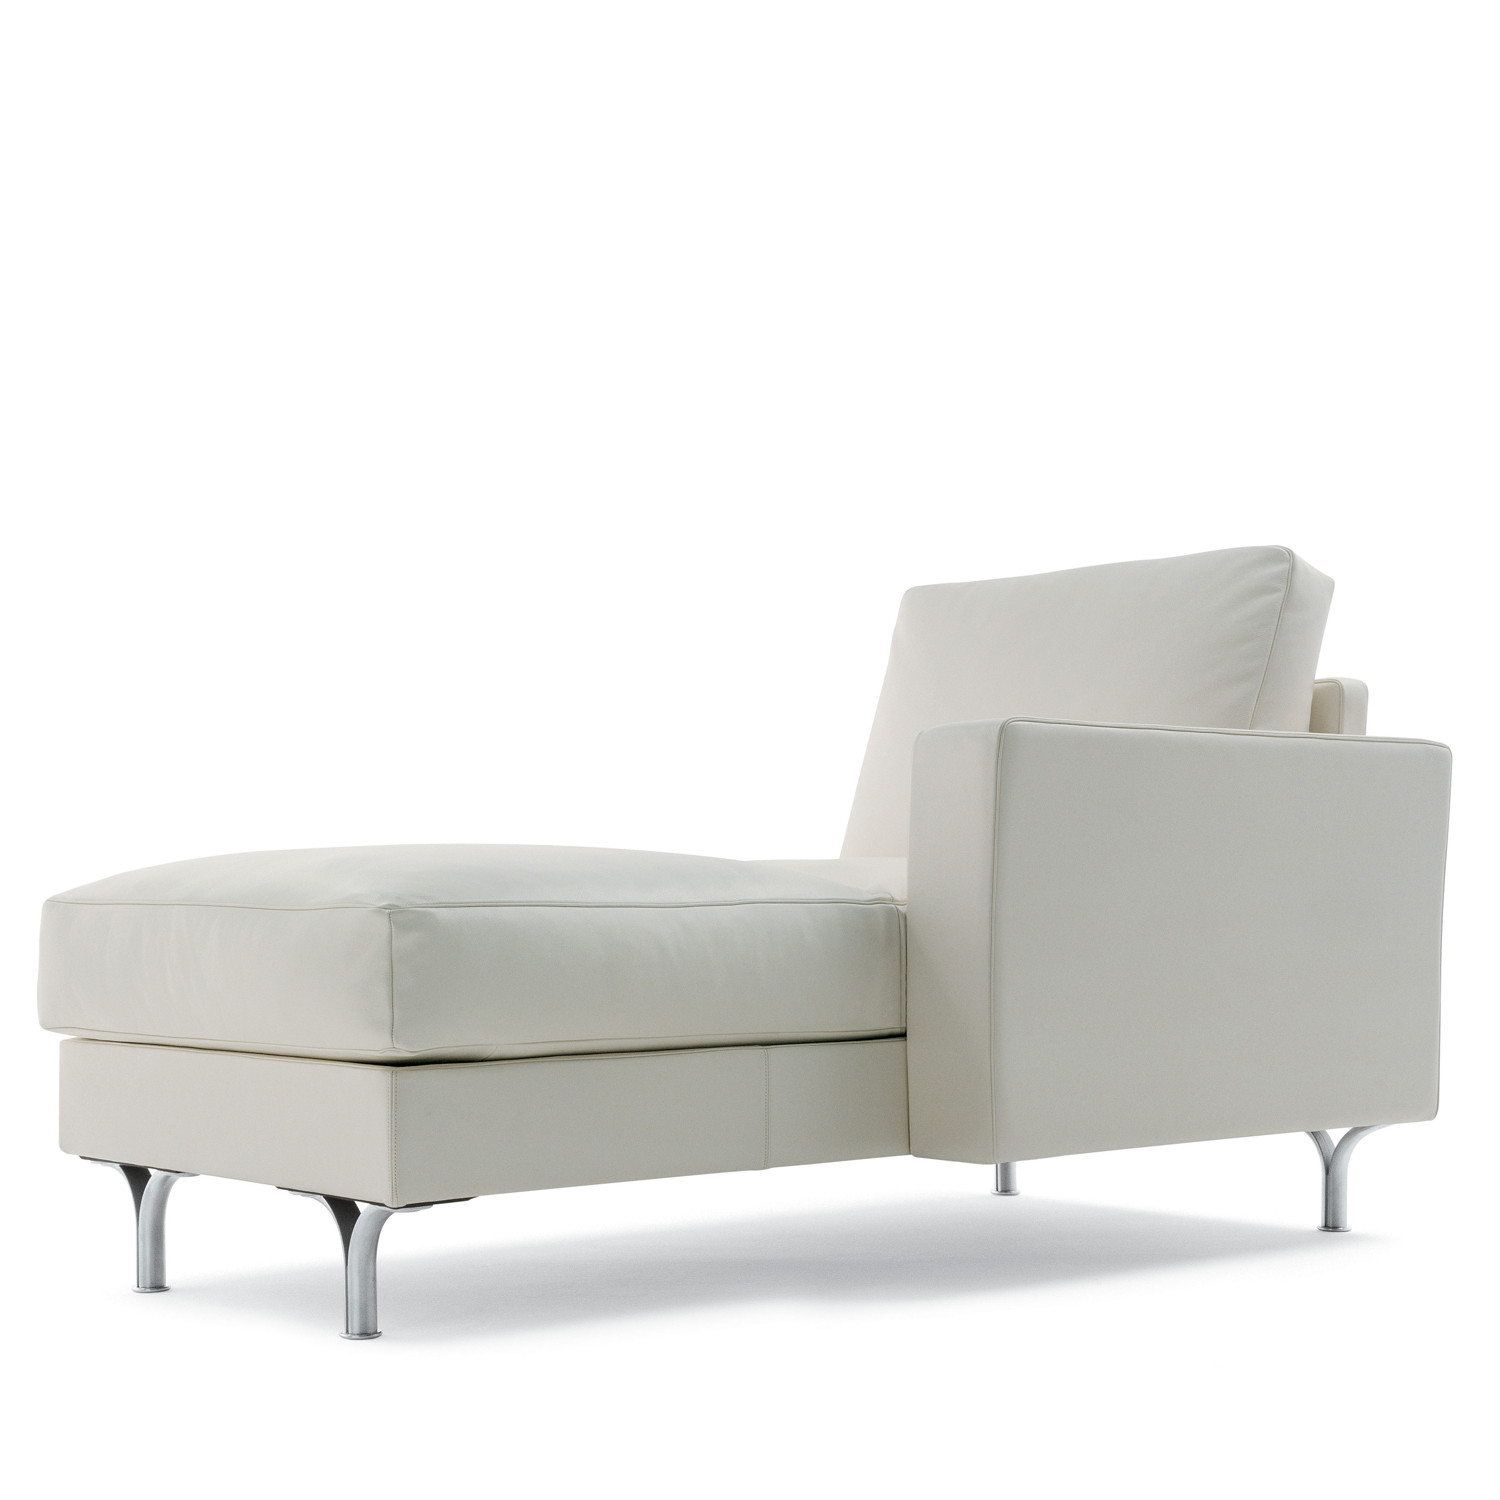 Armonia Sofa Single Chaise